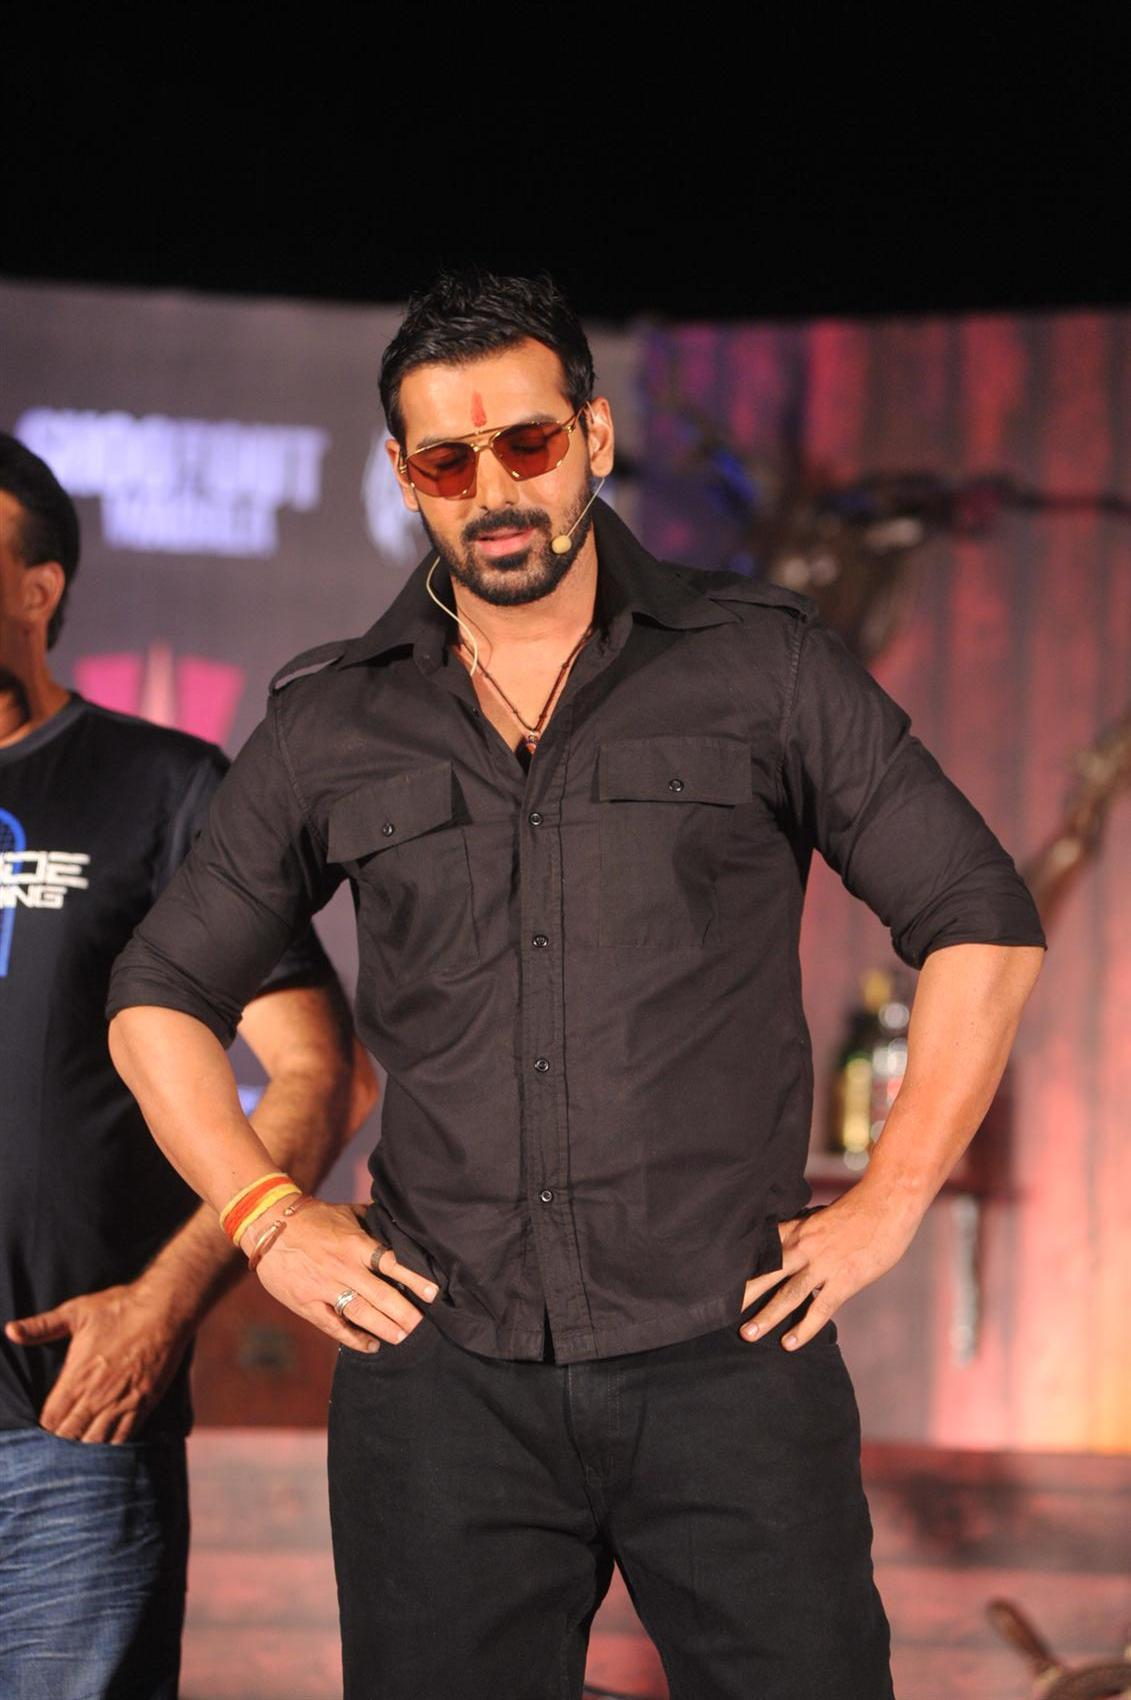 John Abraham at song Aala Re Aala launch of film SHOOTOUT AT WADALA at    John Abraham Body Building In Shootout At Wadala